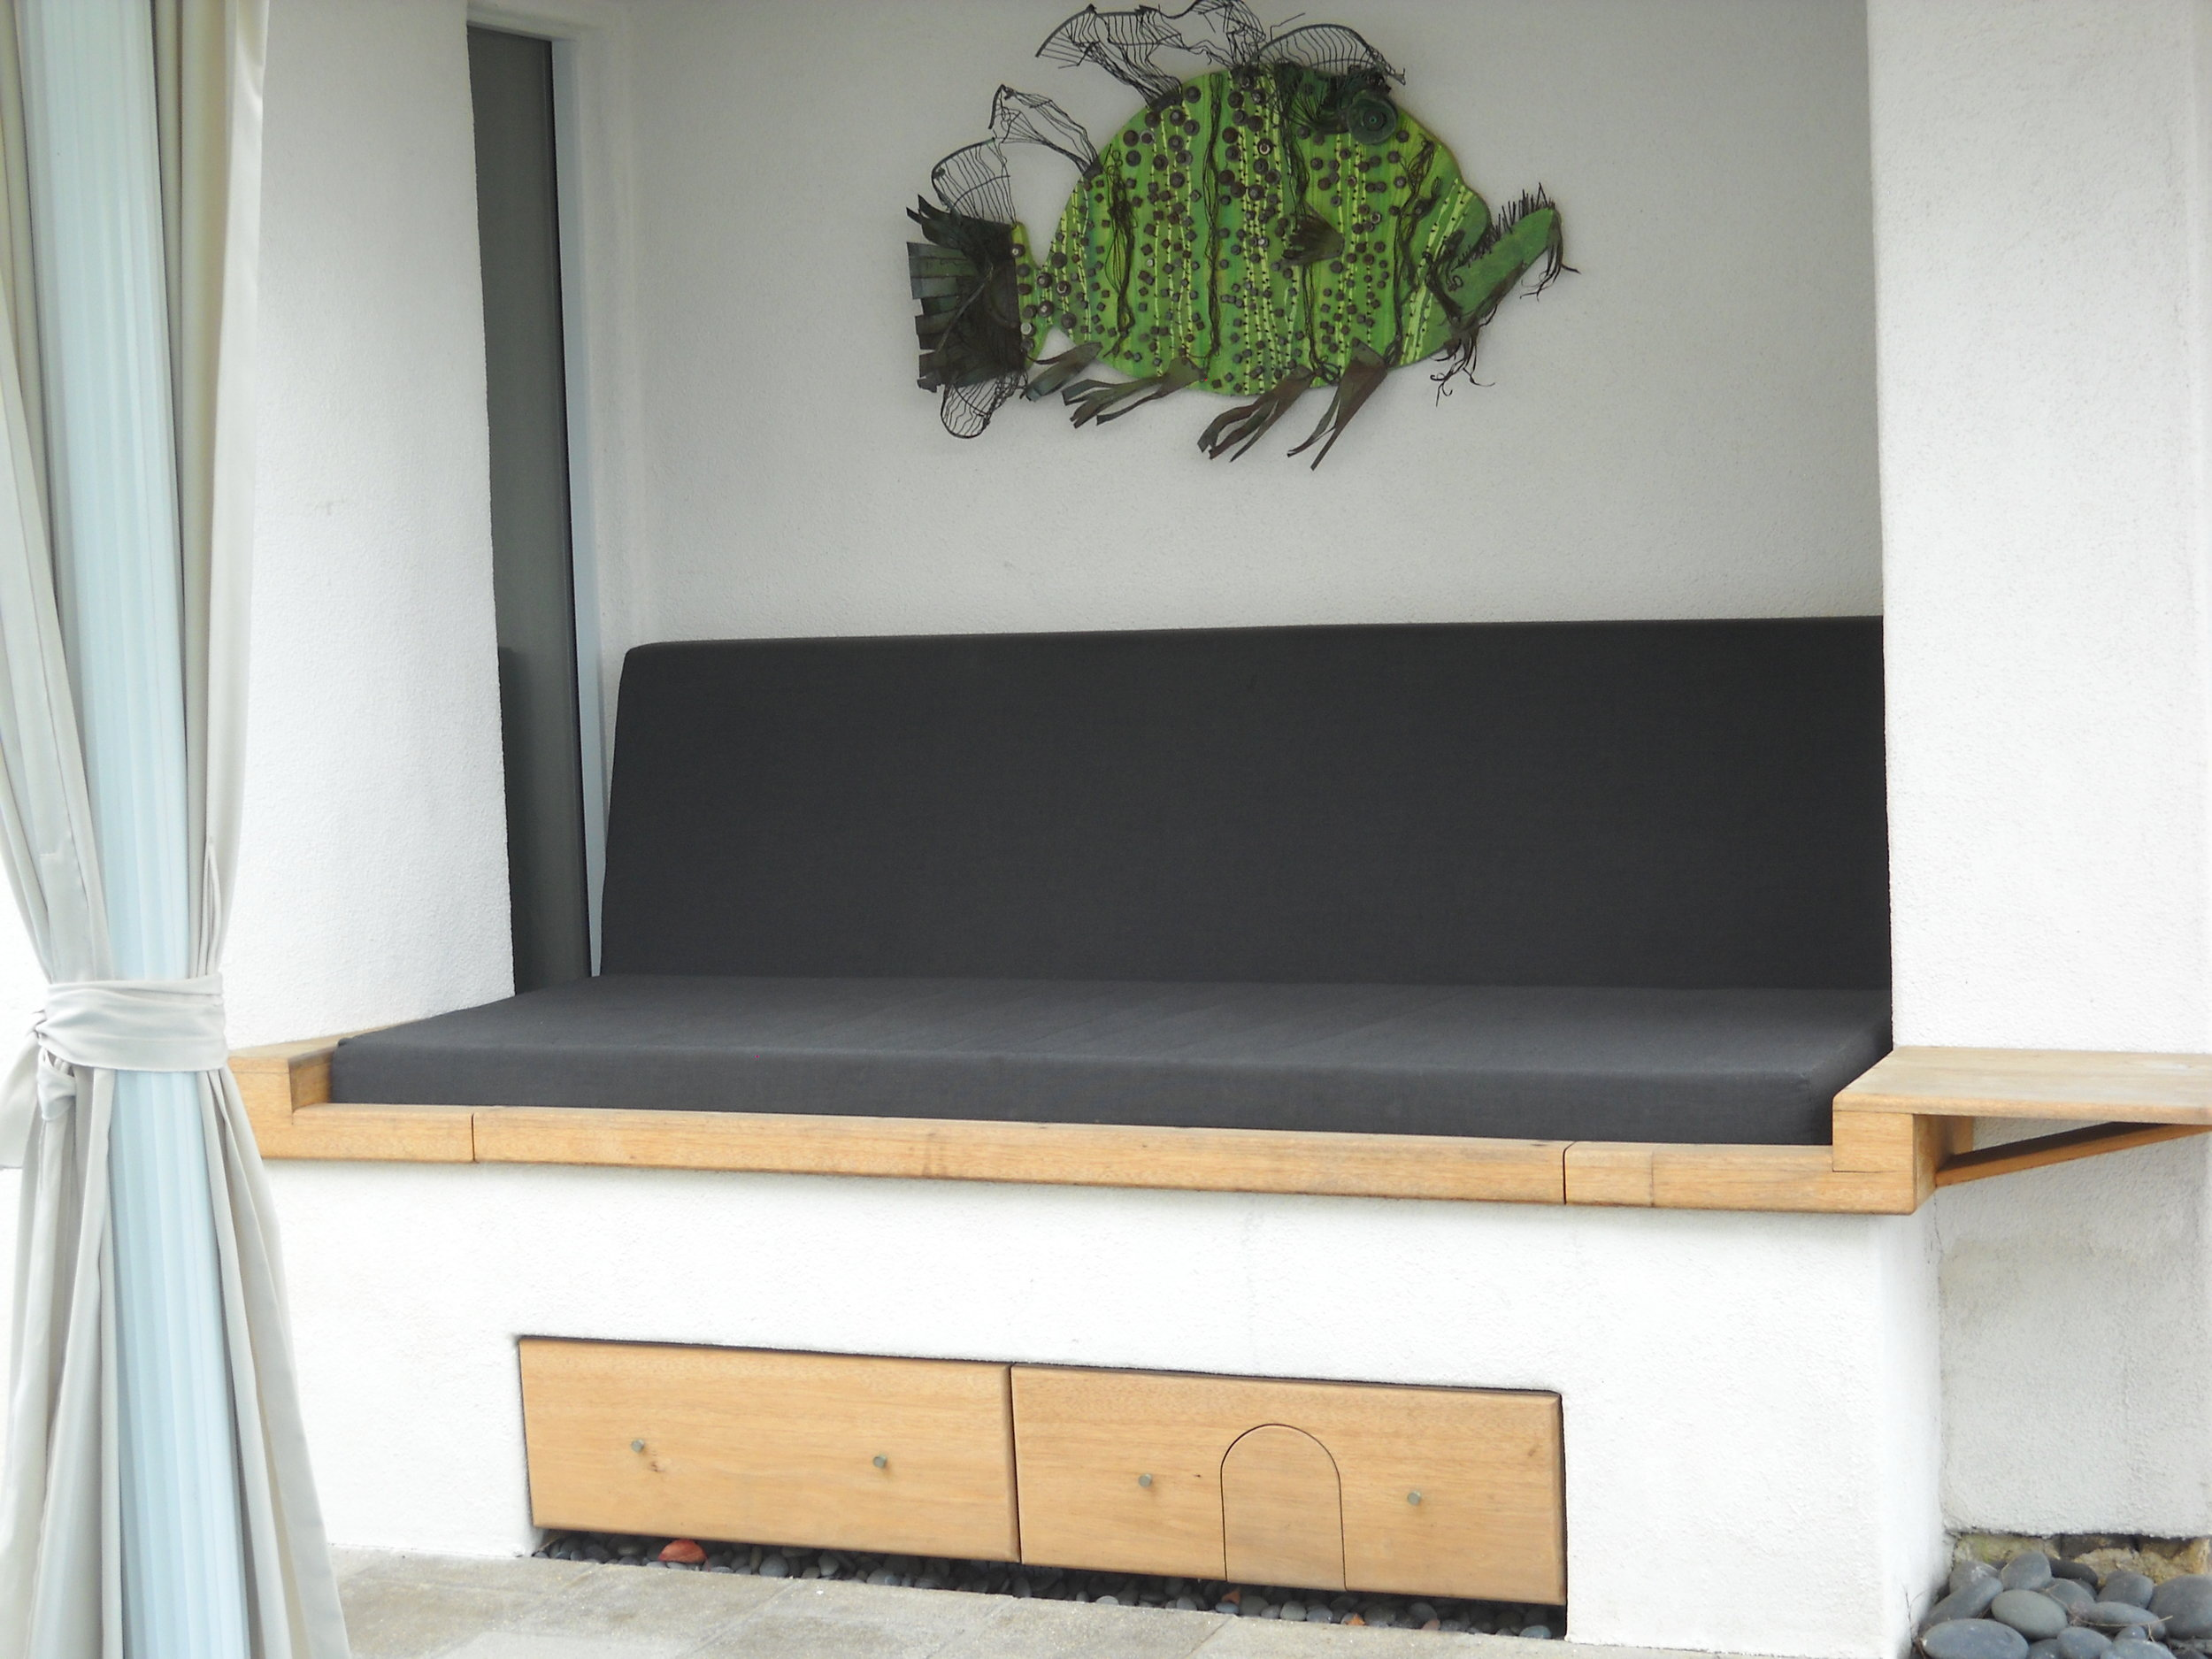 jacuzzi_couch.JPG